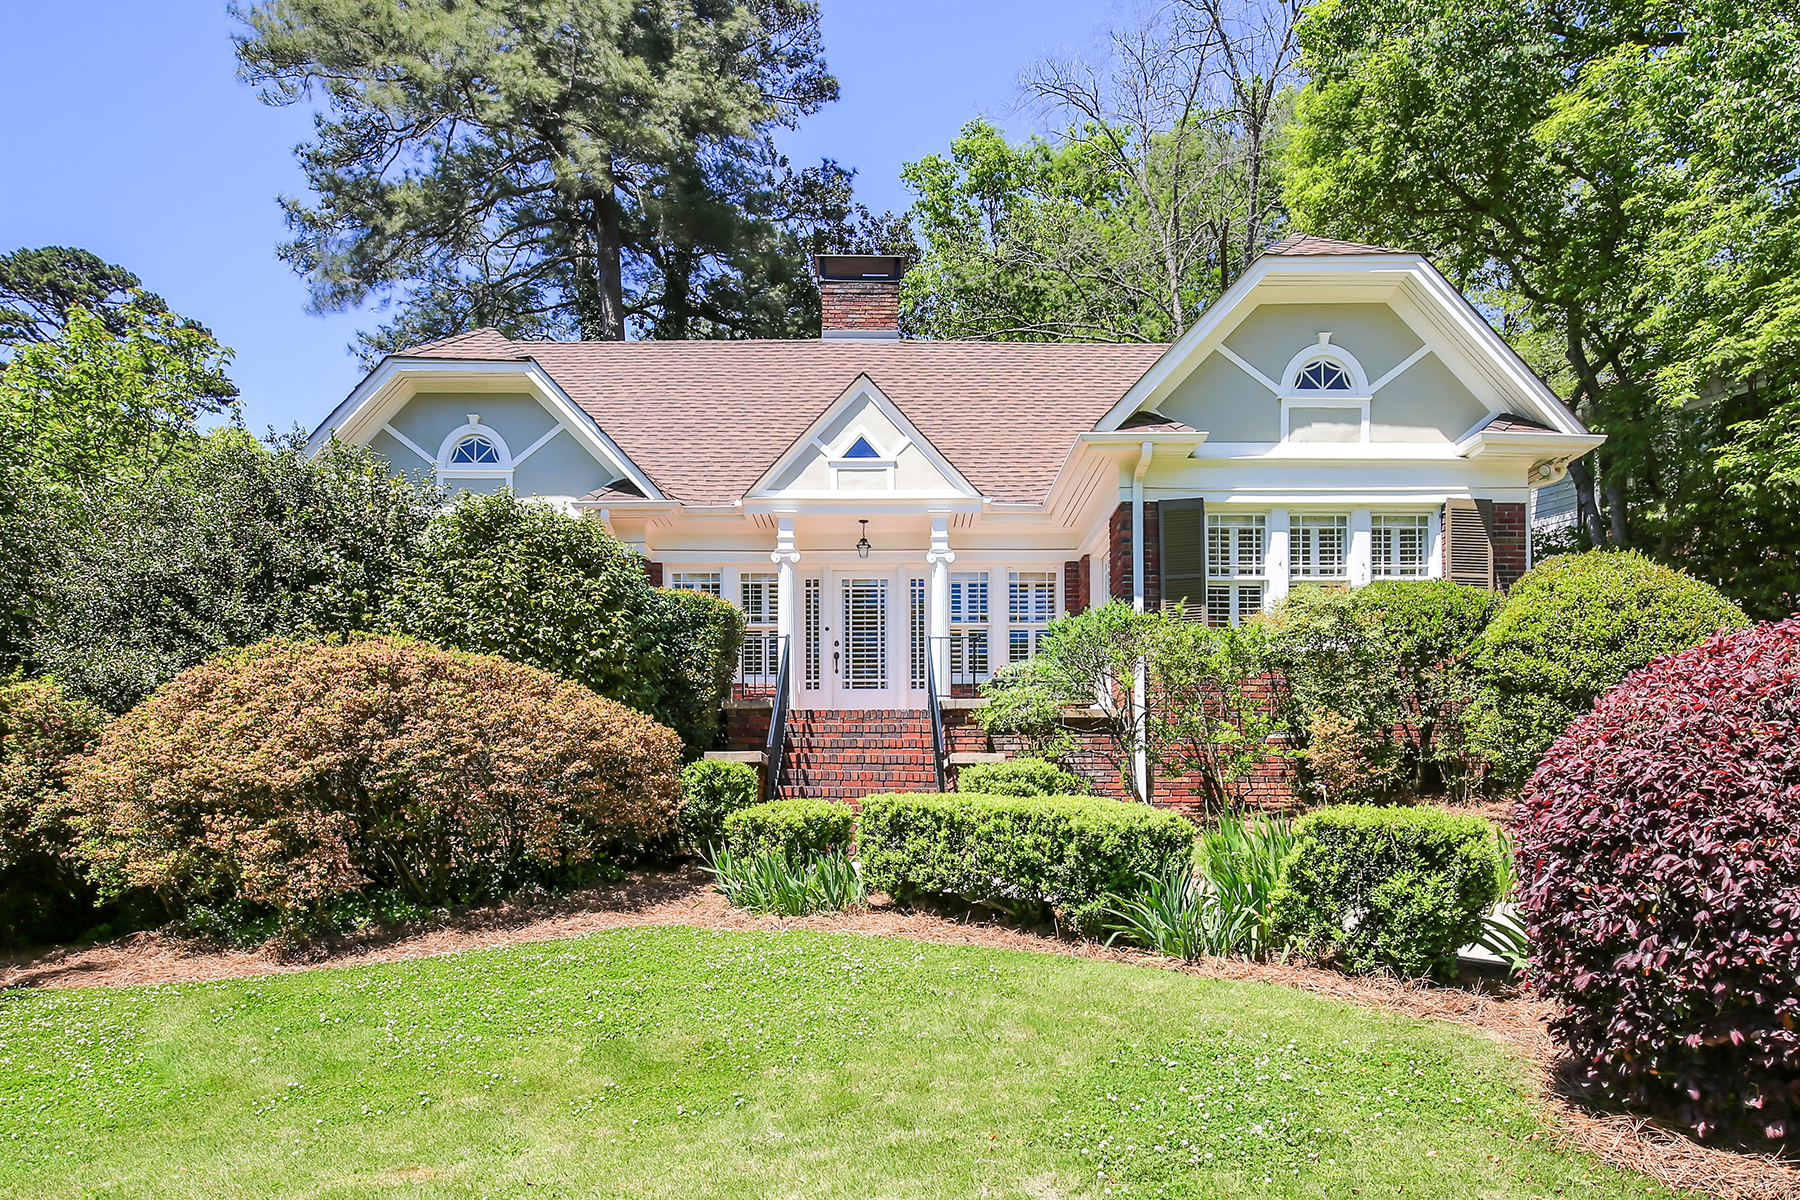 Single Family Home for Sale at Beautiful Tudor Architecture with Modern Updates for Delightful Easy-Living 1202 Clifton Rd Atlanta, Georgia 30307 United States